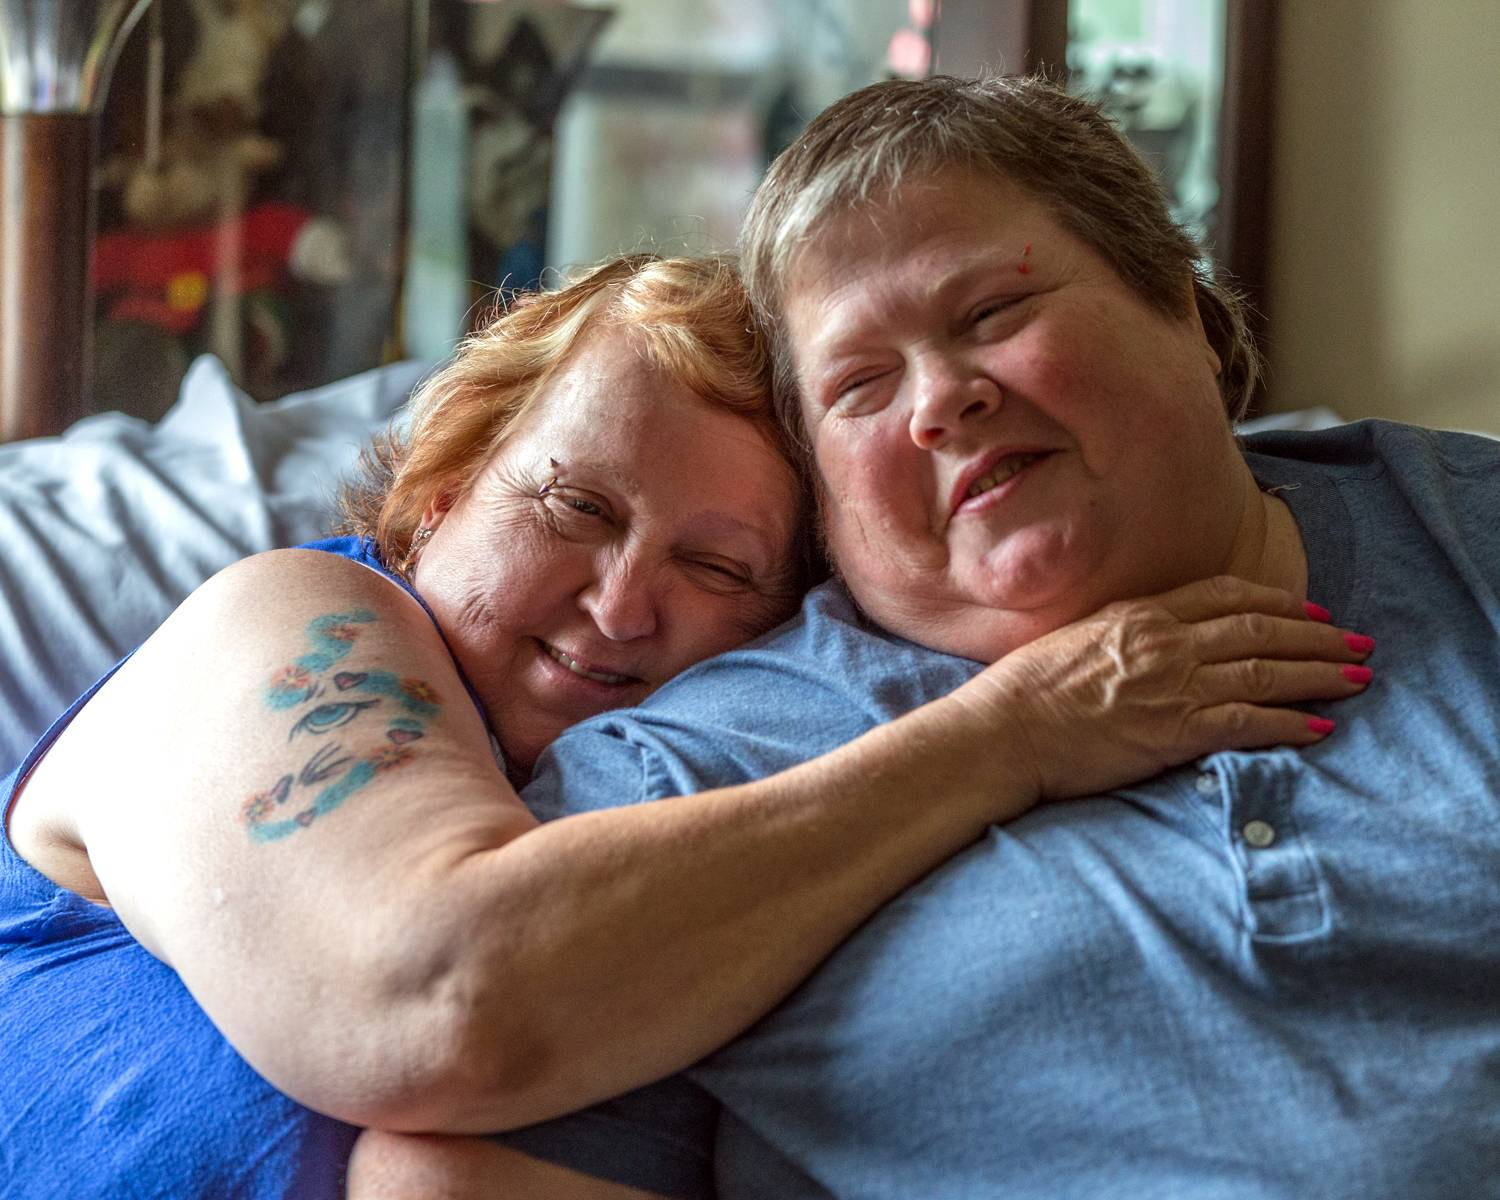 Lyn Judkin, left, and Bonnie Everly in Chesterton, Ind. For the Indiana couple, who've been together more than 13 years, a health crisis Everly experienced this spring drove home the plight they and other gay and lesbian couples face in states such as Indiana that ban gay marriage.